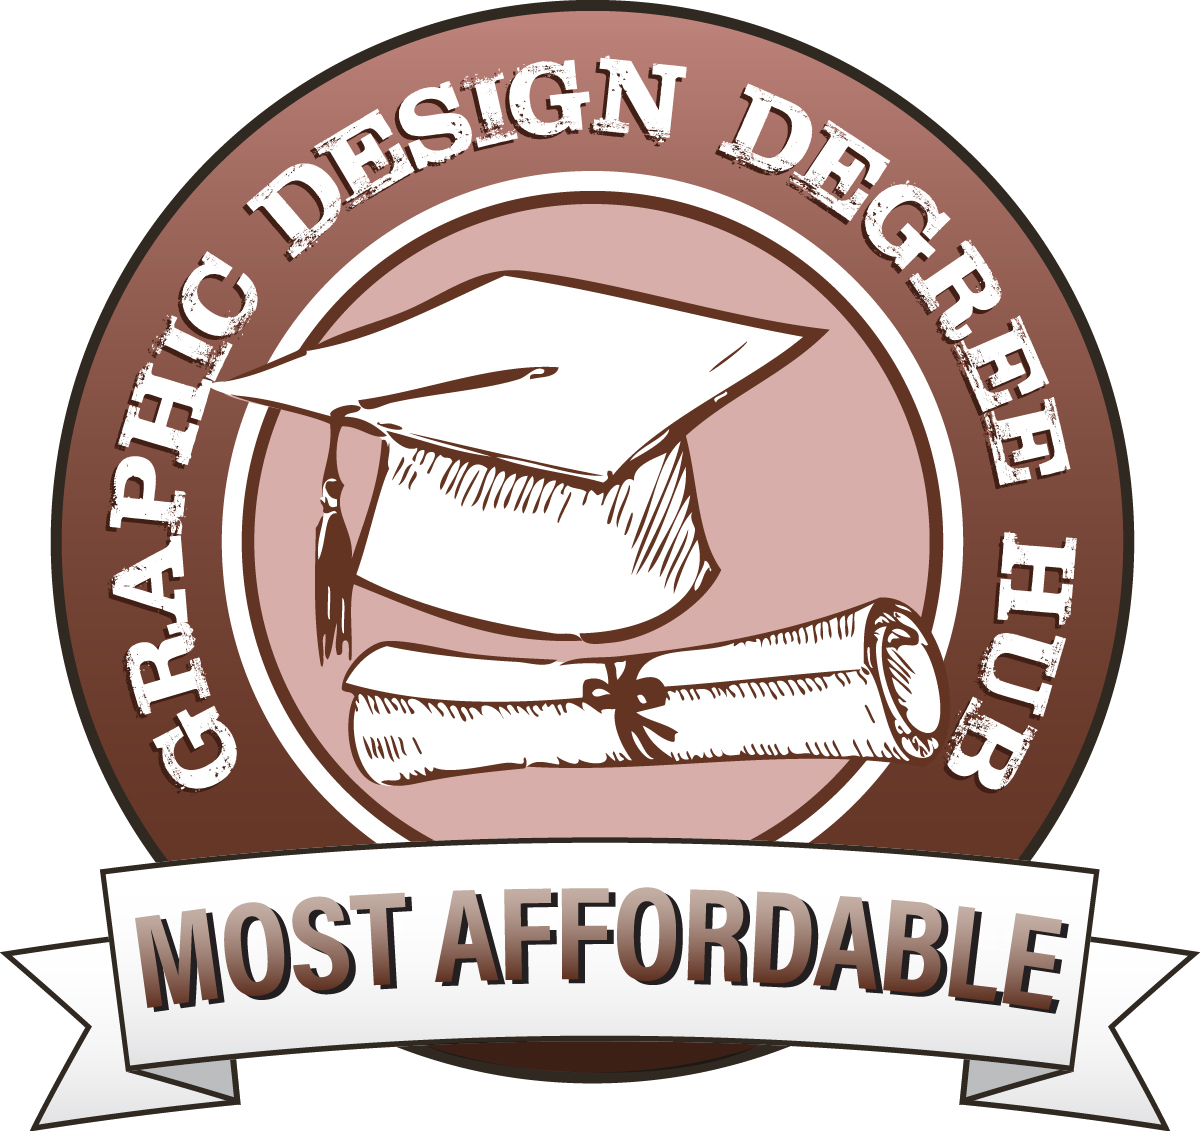 Magnificent Top 13 Best Affordable Graphic Design Degree Programs 2019 Home Interior And Landscaping Analalmasignezvosmurscom